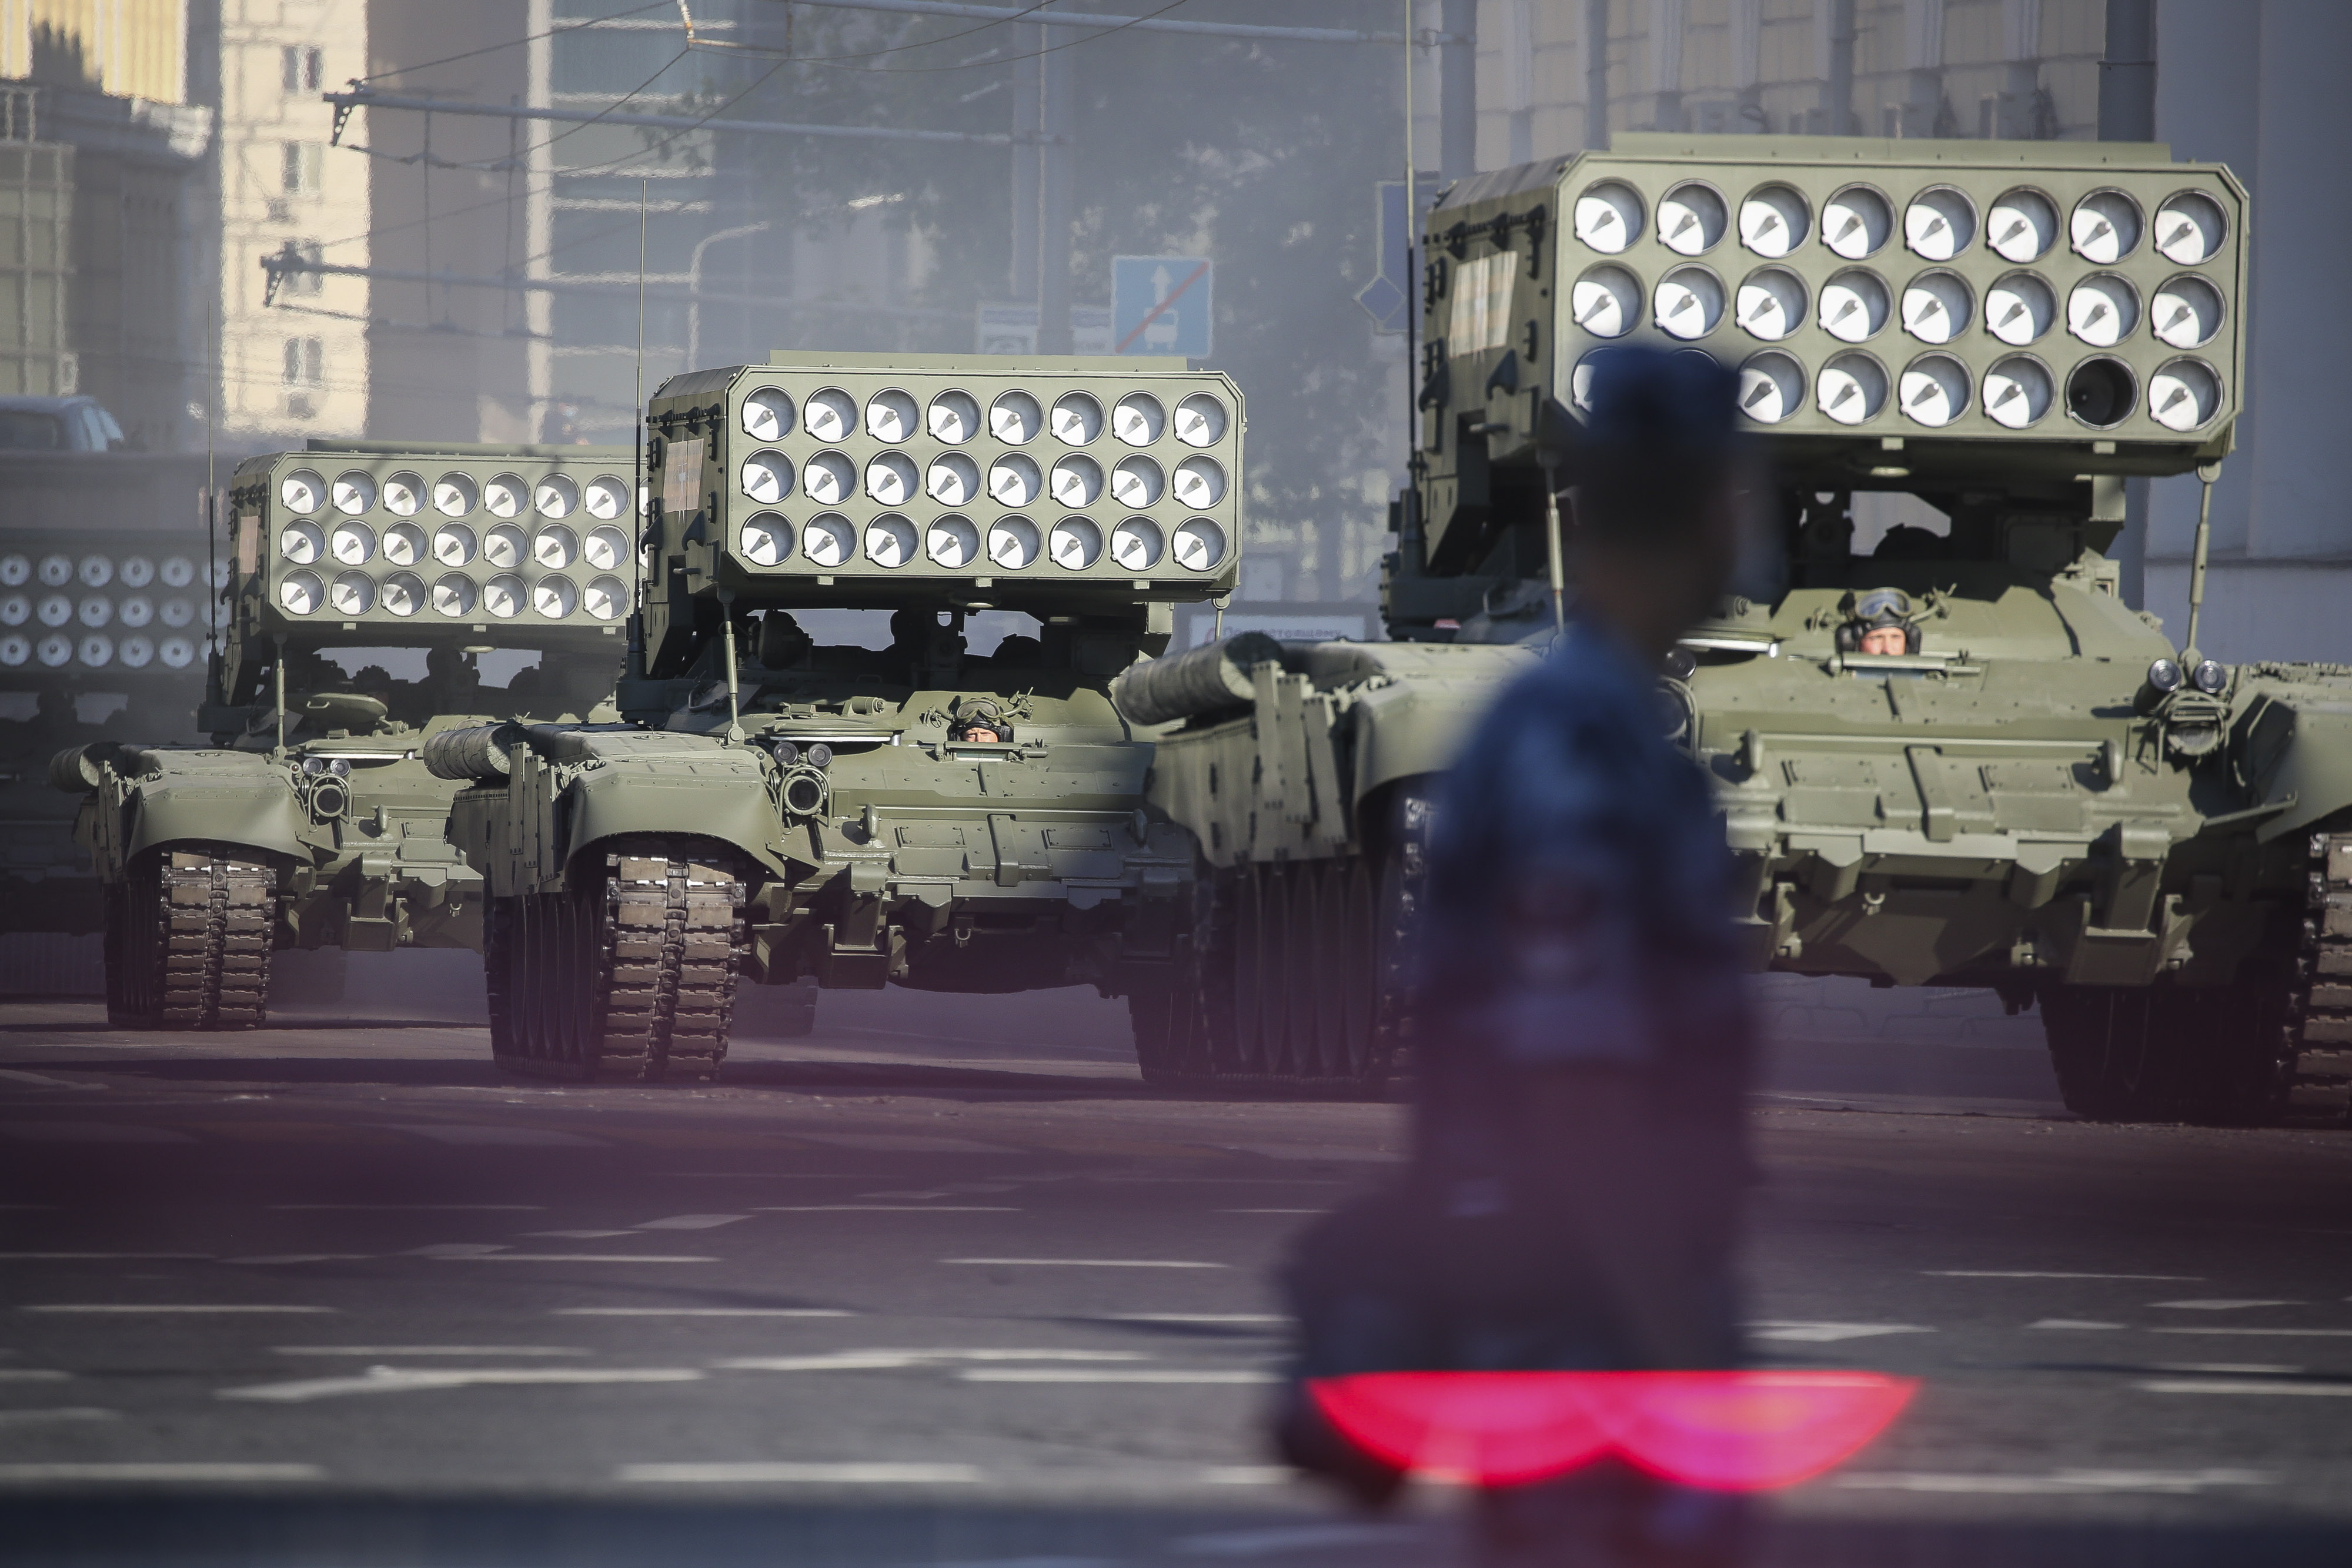 Putin Shows Military Might At Wwii Parade Ahead Of Key Vote Bloomberg